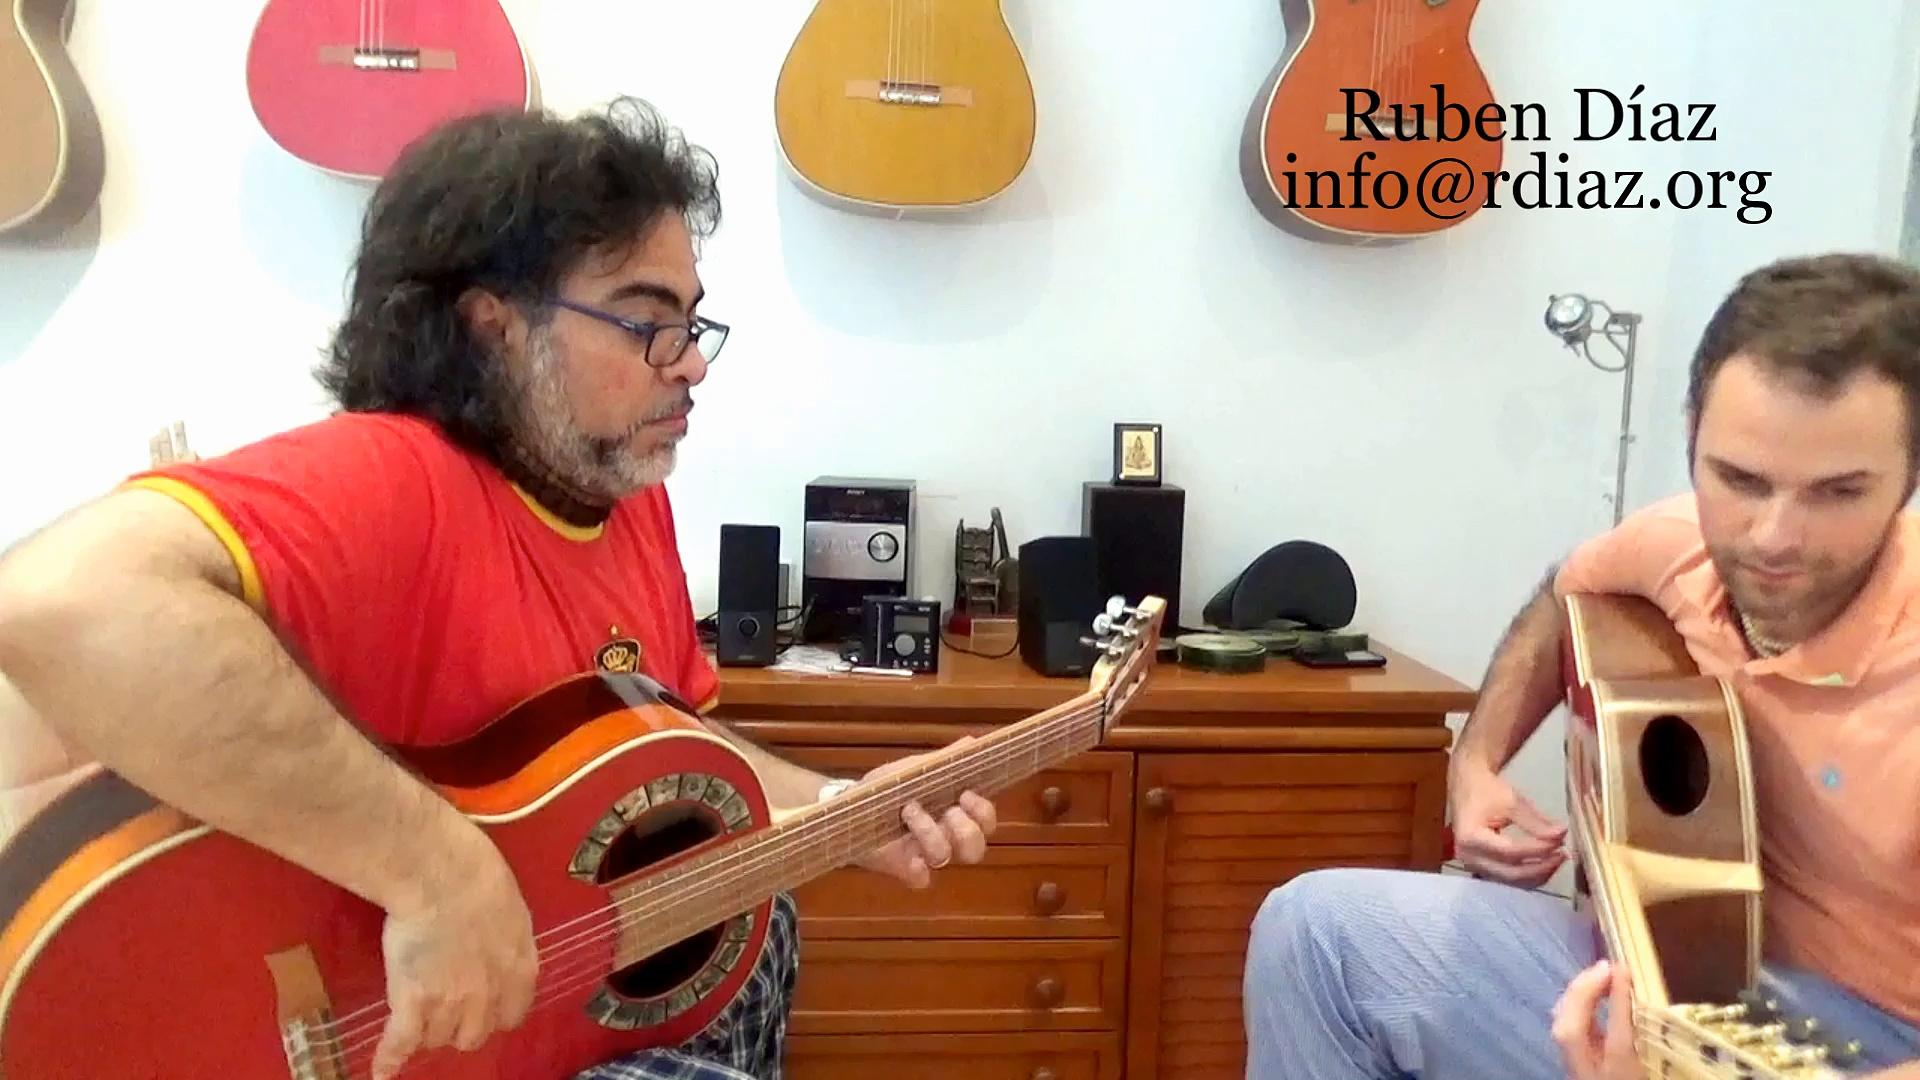 Perla Aquila Italian Bio Nylon Strings on Andalusian Simplicio Vanguard Guitars / Ruben Diaz modern flamenco